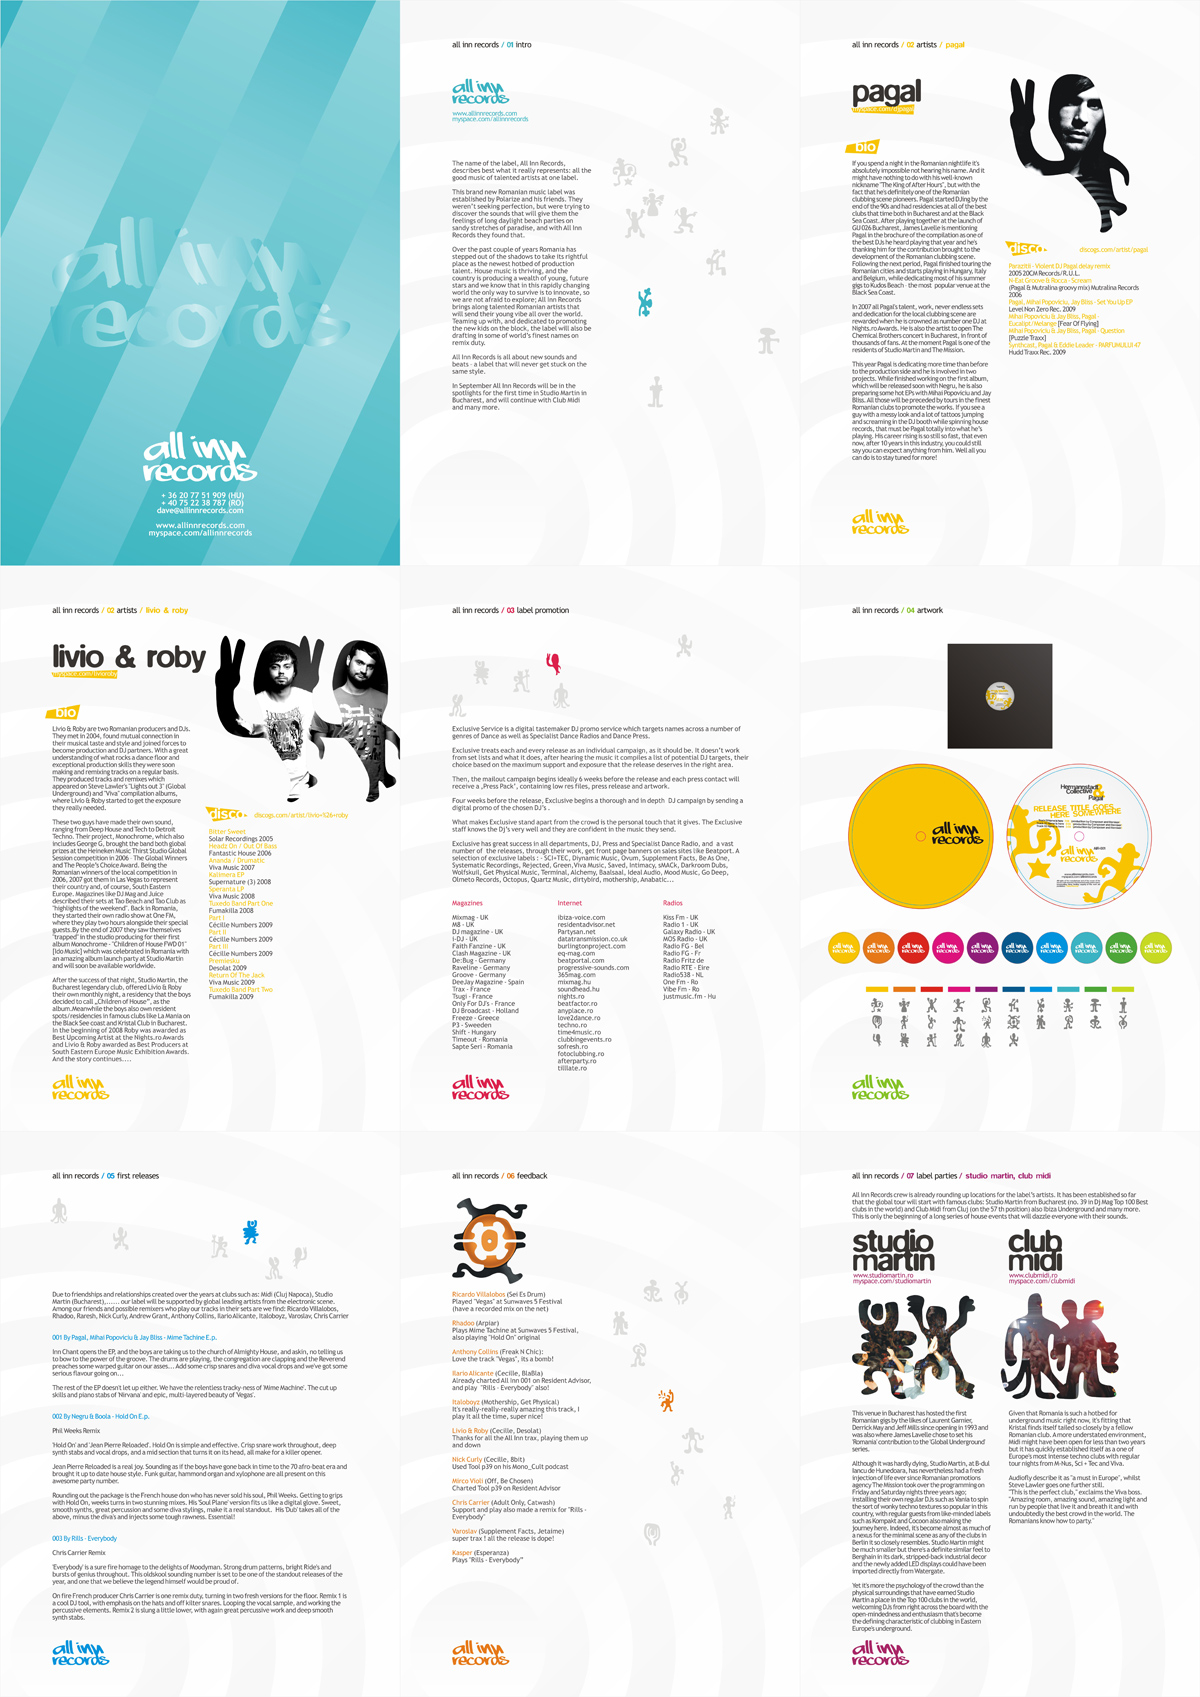 All Inn, electronic music records label, corporate presentation, design by Alex Tass